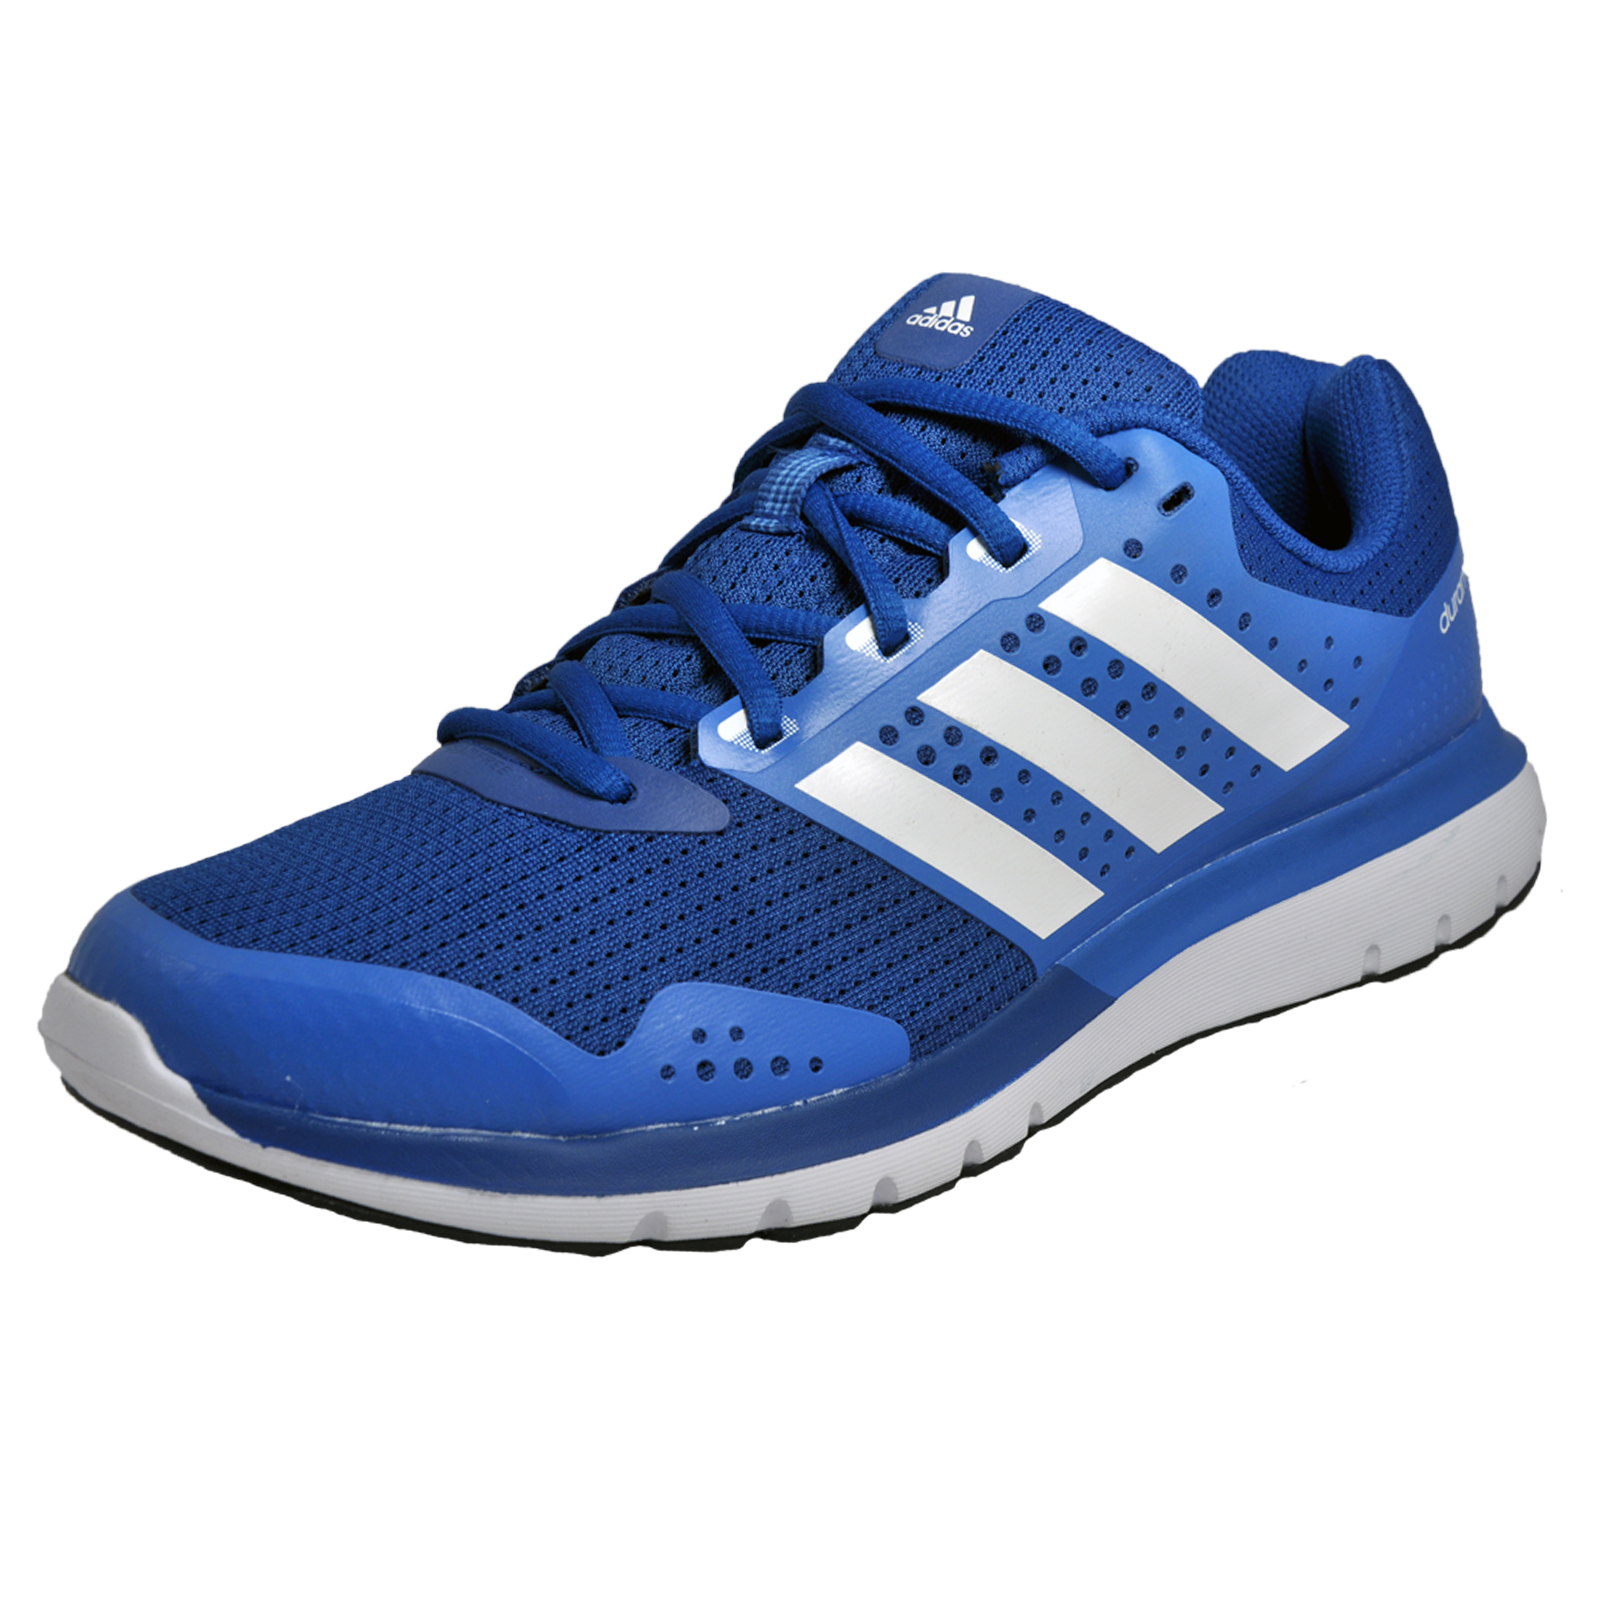 af3131c5923 Details about Adidas Duramo 7 Mens Running Shoes Fitness Gym Workout  Trainers Blue